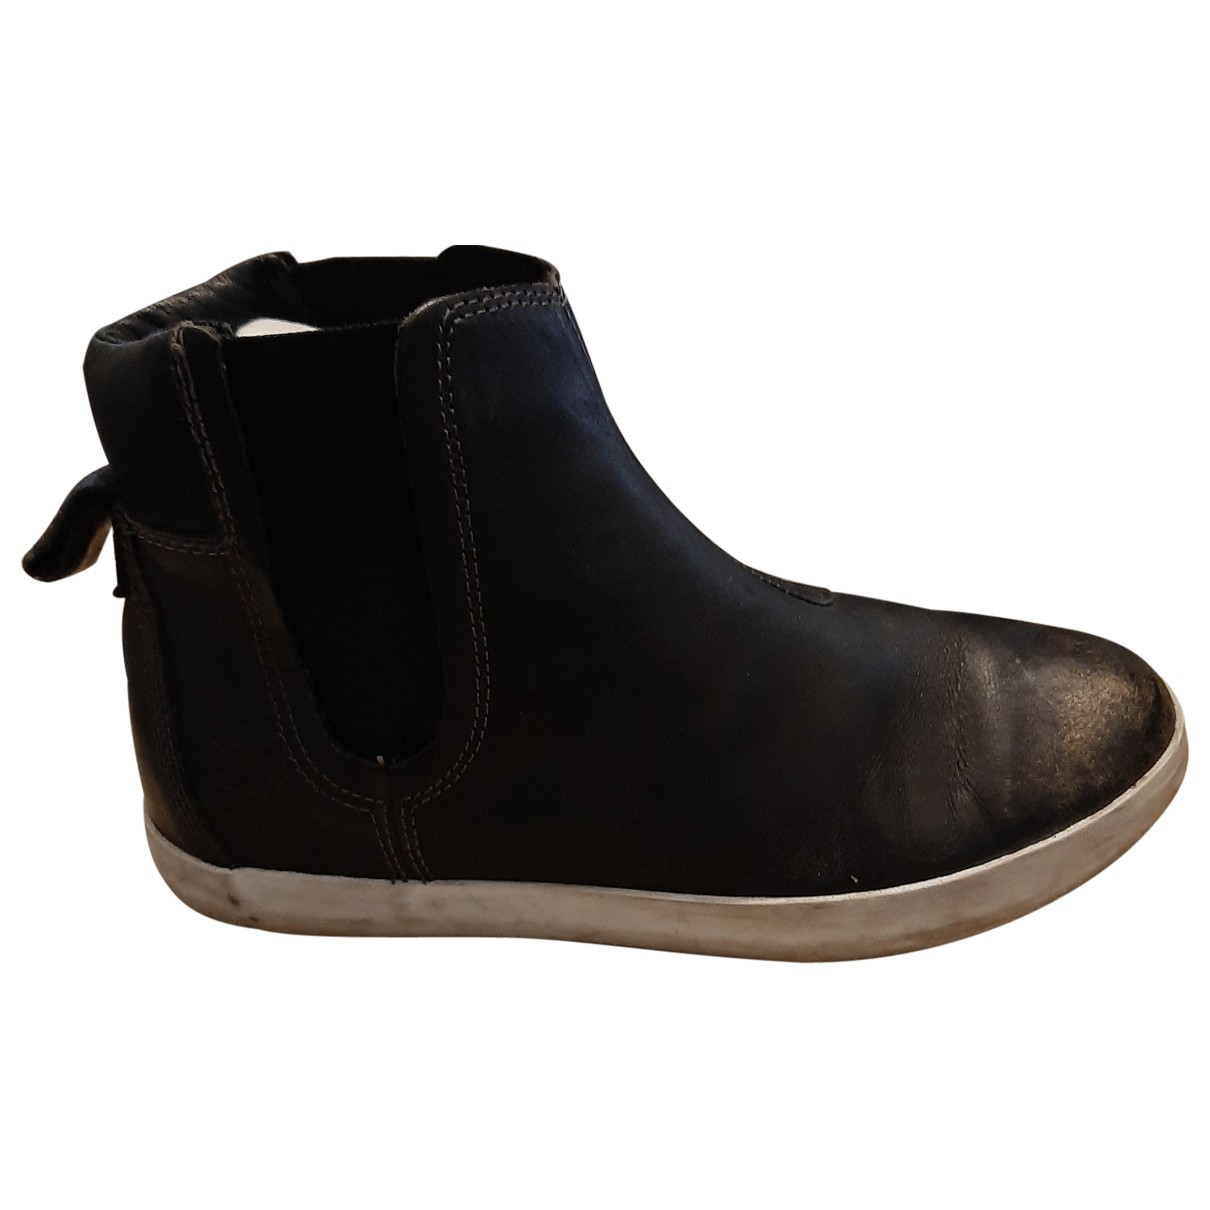 Timberland N Black Leather Ankle boots for Women 37 EU